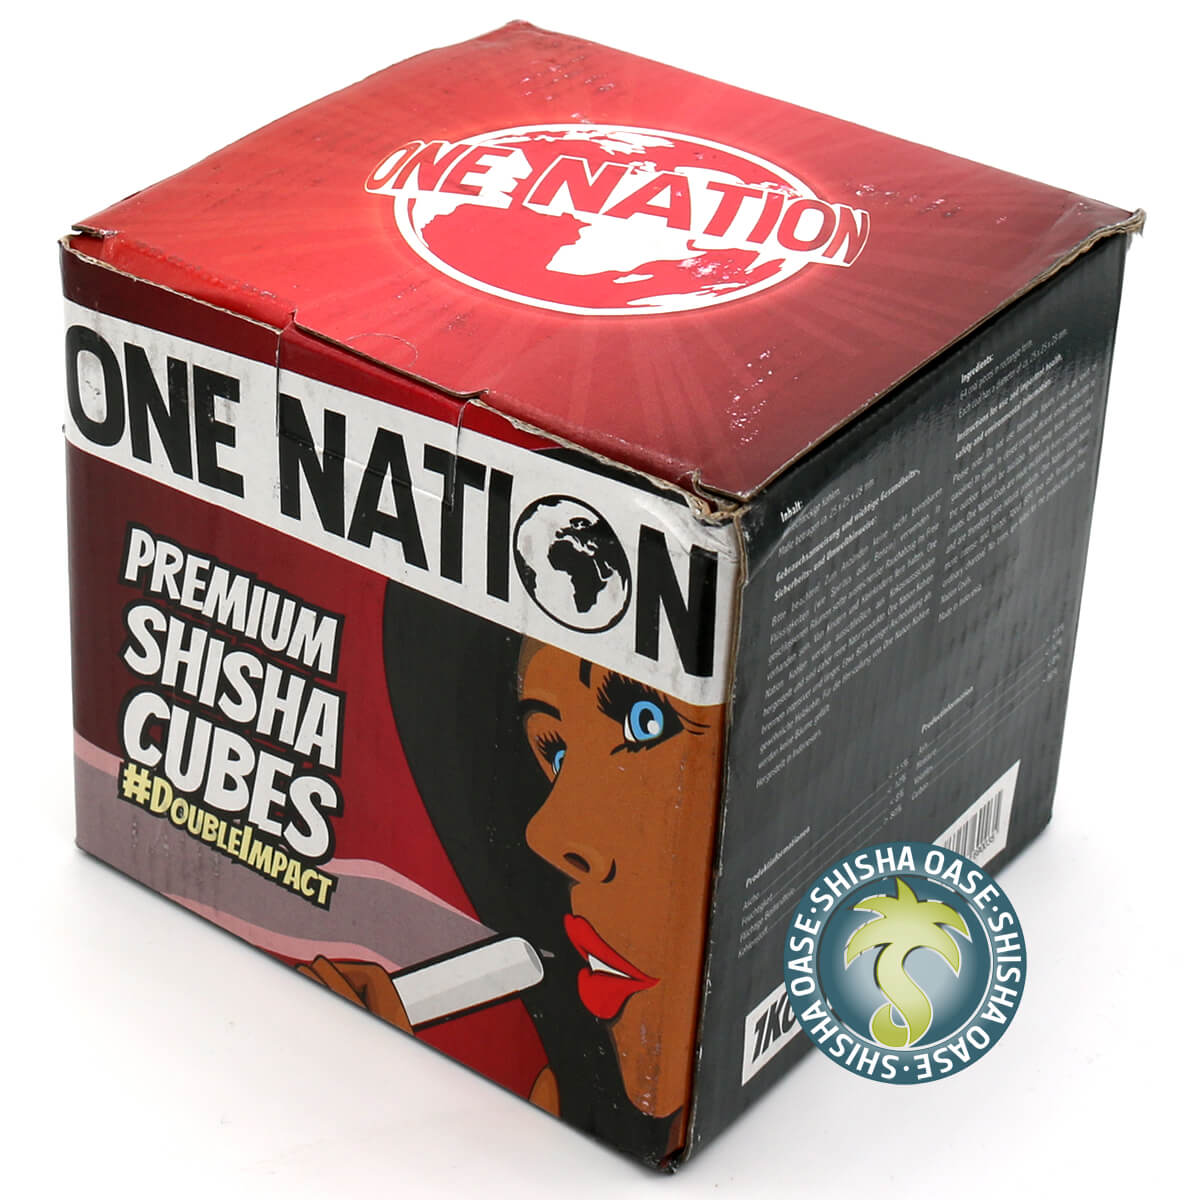 One Nation #Double Impact - 1kg